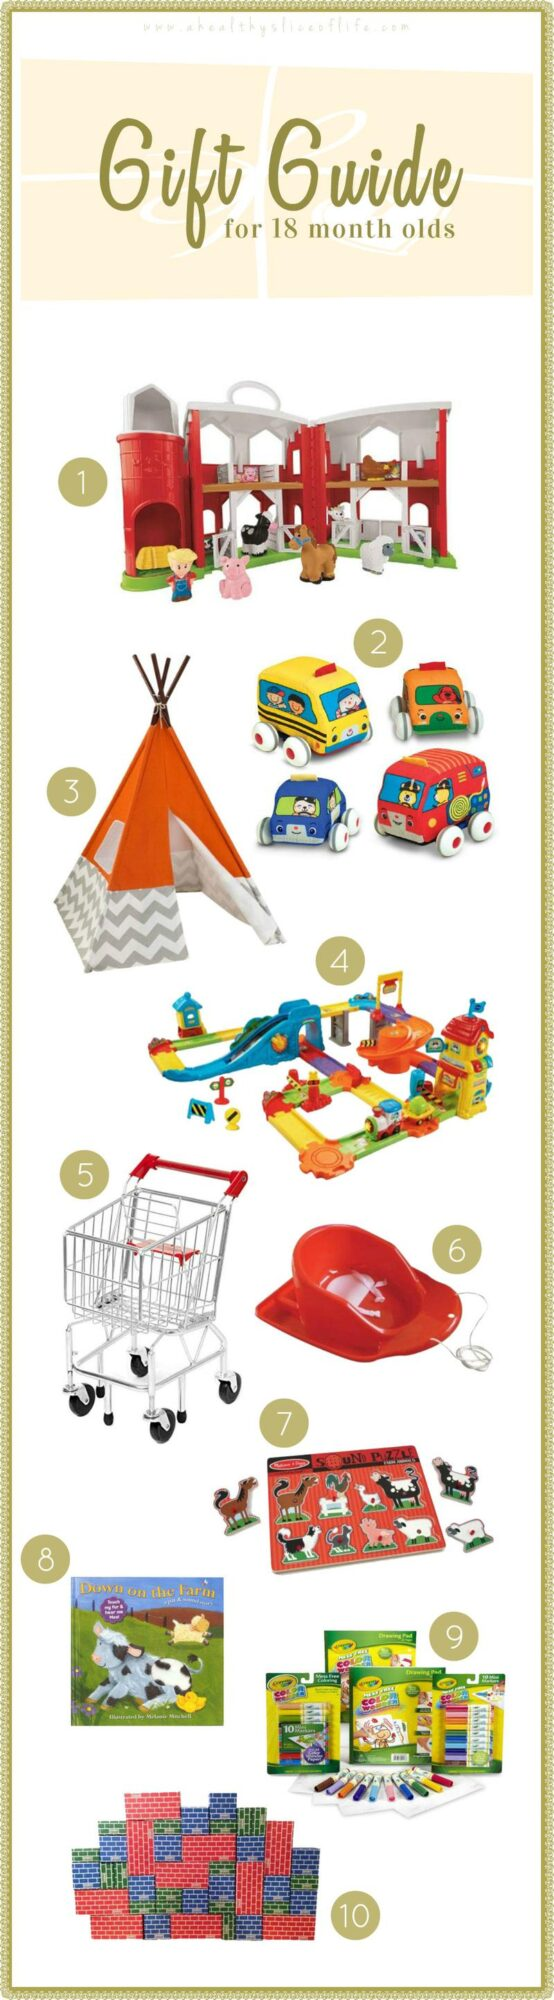 Gift Guide, 18 months old